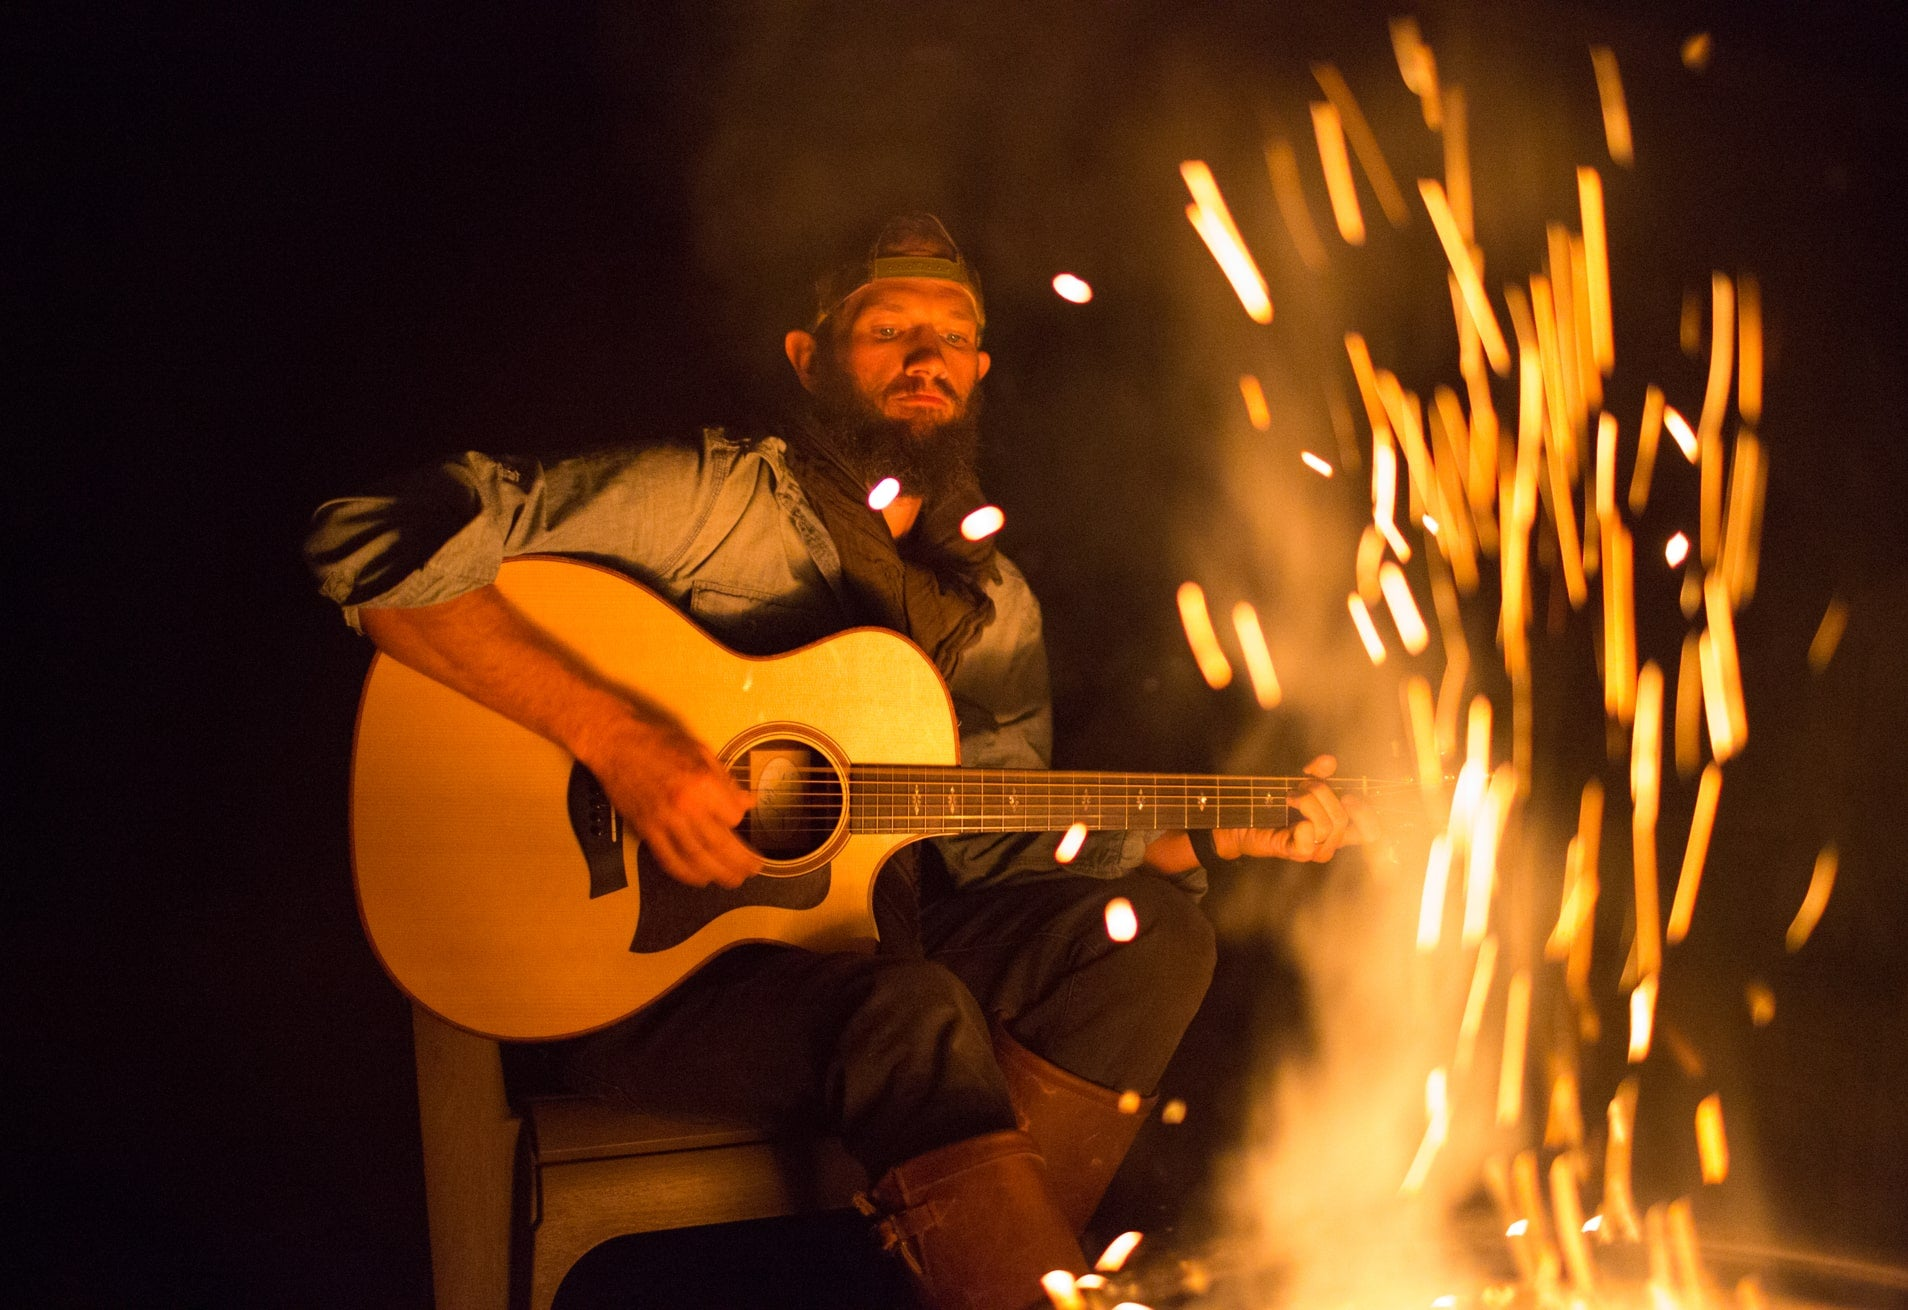 Playing guitar by the fire